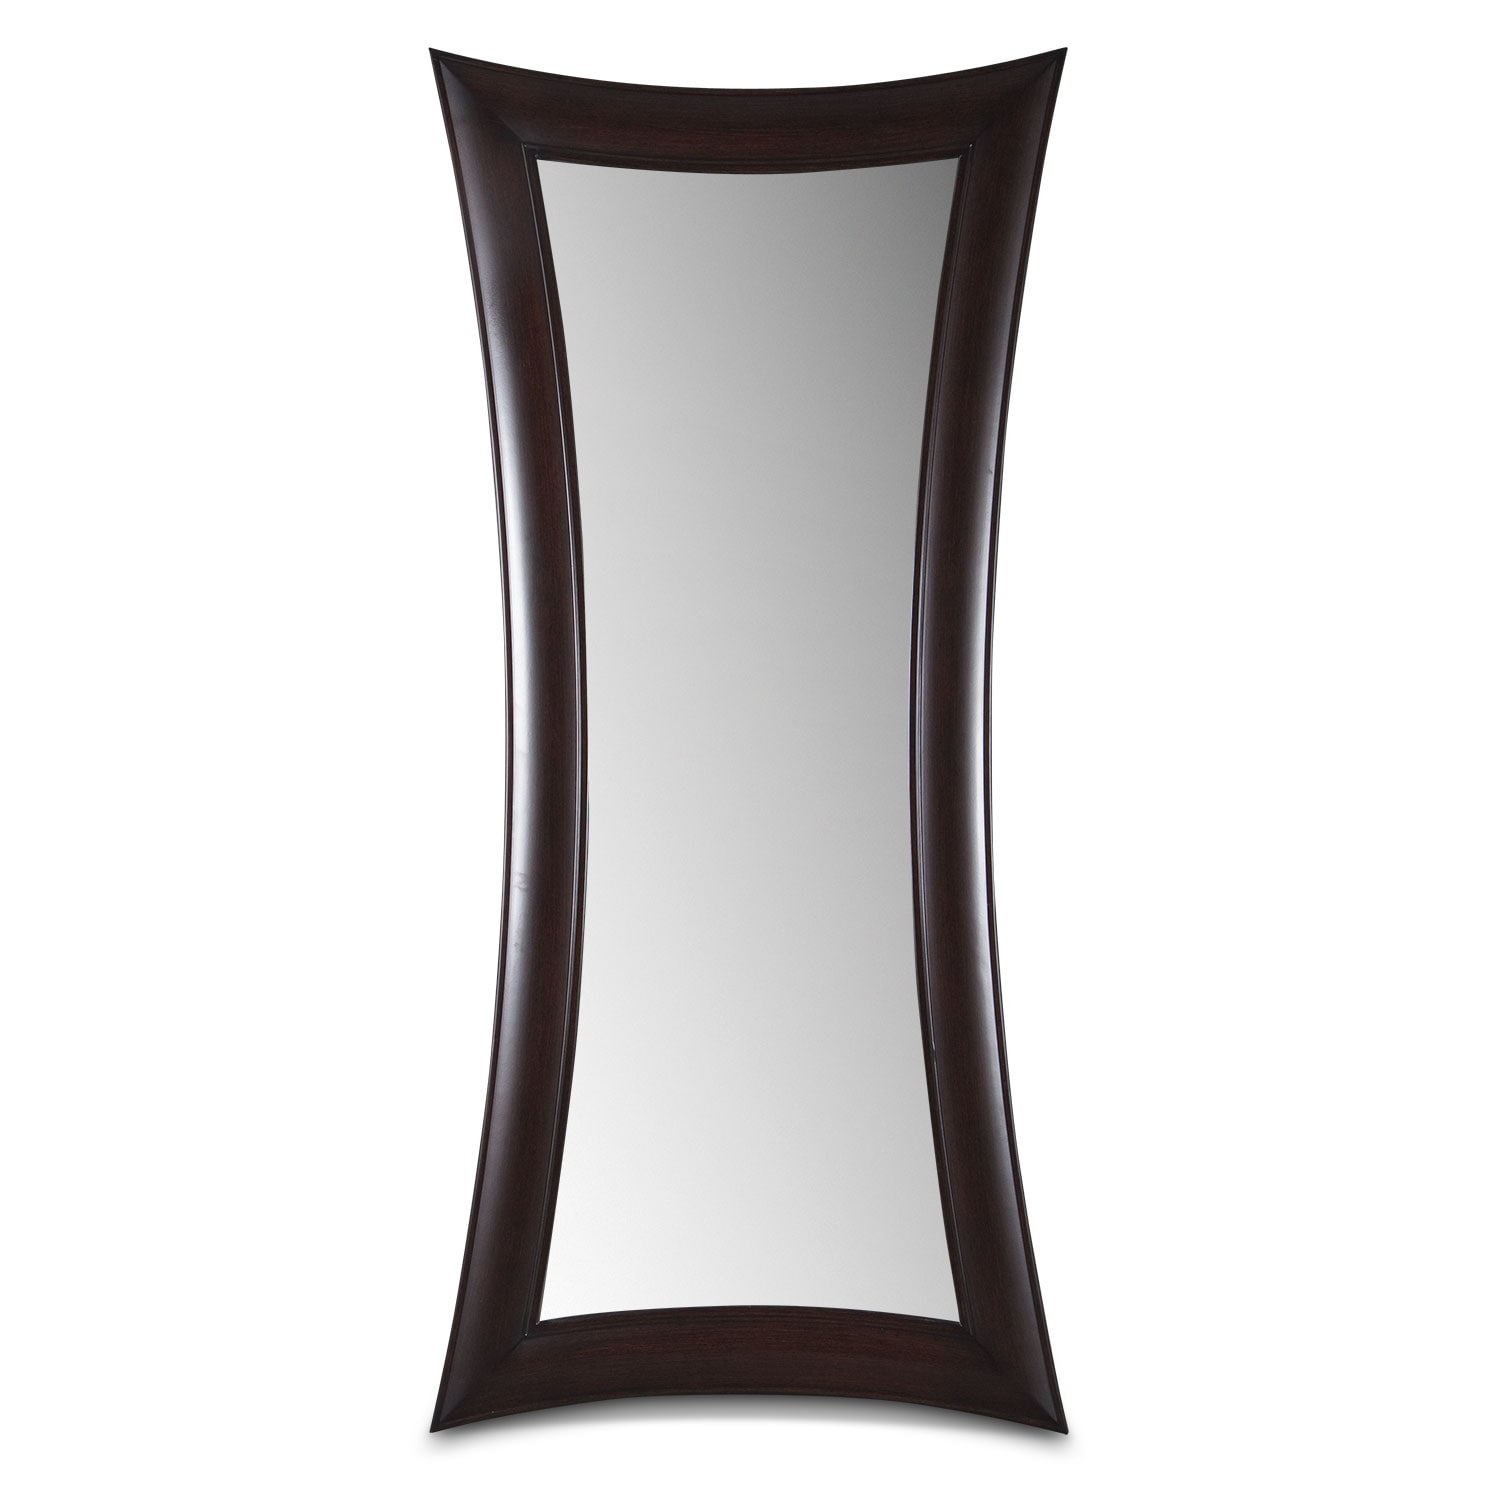 Home Accessories - Abigail Wenge Floor Mirror